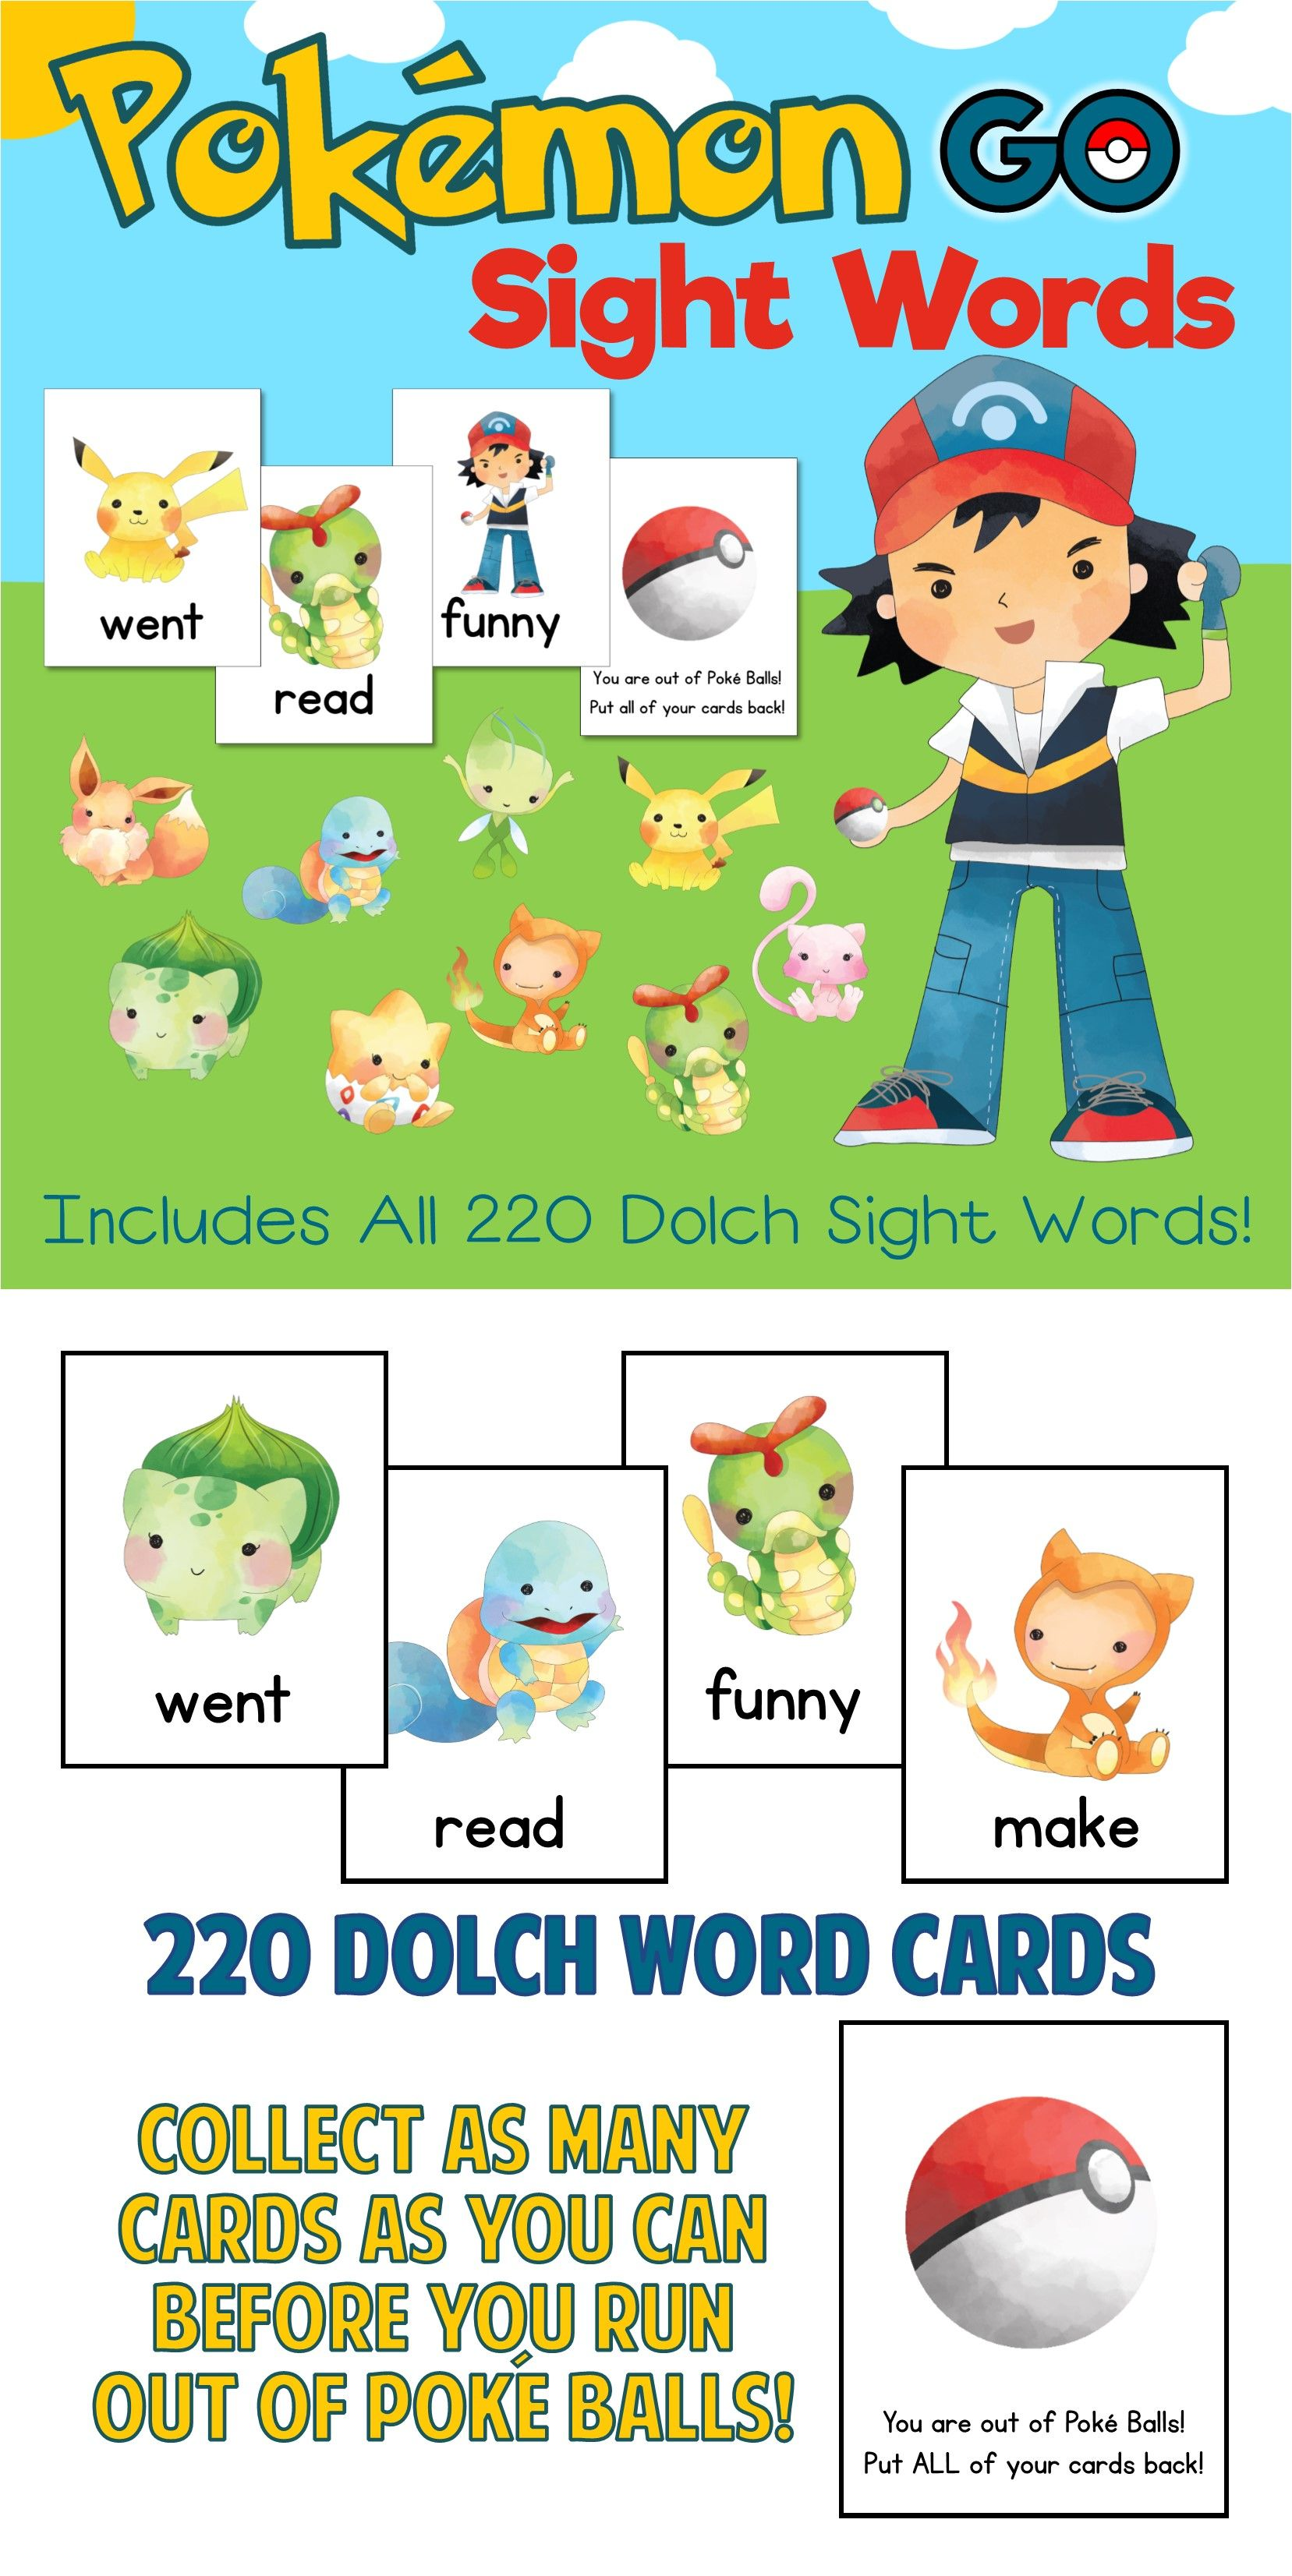 Pokemon Go Sight Words Game Available In Dolch And Fry Word Versions Collect As Many Pokemon Cards As Y Dolch Sight Word Games Sight Word Games Sight Words [ 3305 x 1657 Pixel ]